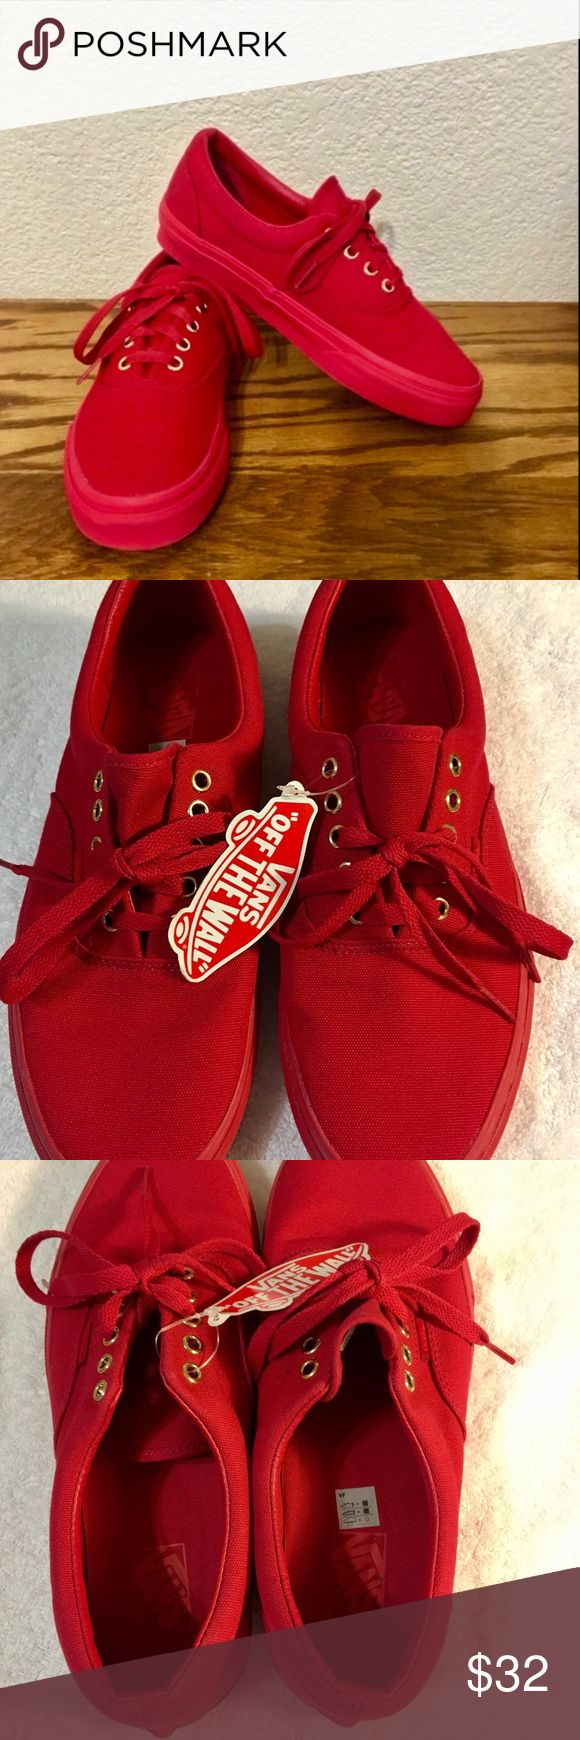 Vans Shoe's Vans Red on Red W/A Touch Of Gold Shoe's 🎉🎉Unisex Men's Size 10 1/2 Women's Size 12 Tags/ slightly dusty / Price Is Firm 🎉🎉packaged & ready to ship 📦 These Vans do not come wBox Vans Shoes Sneakers